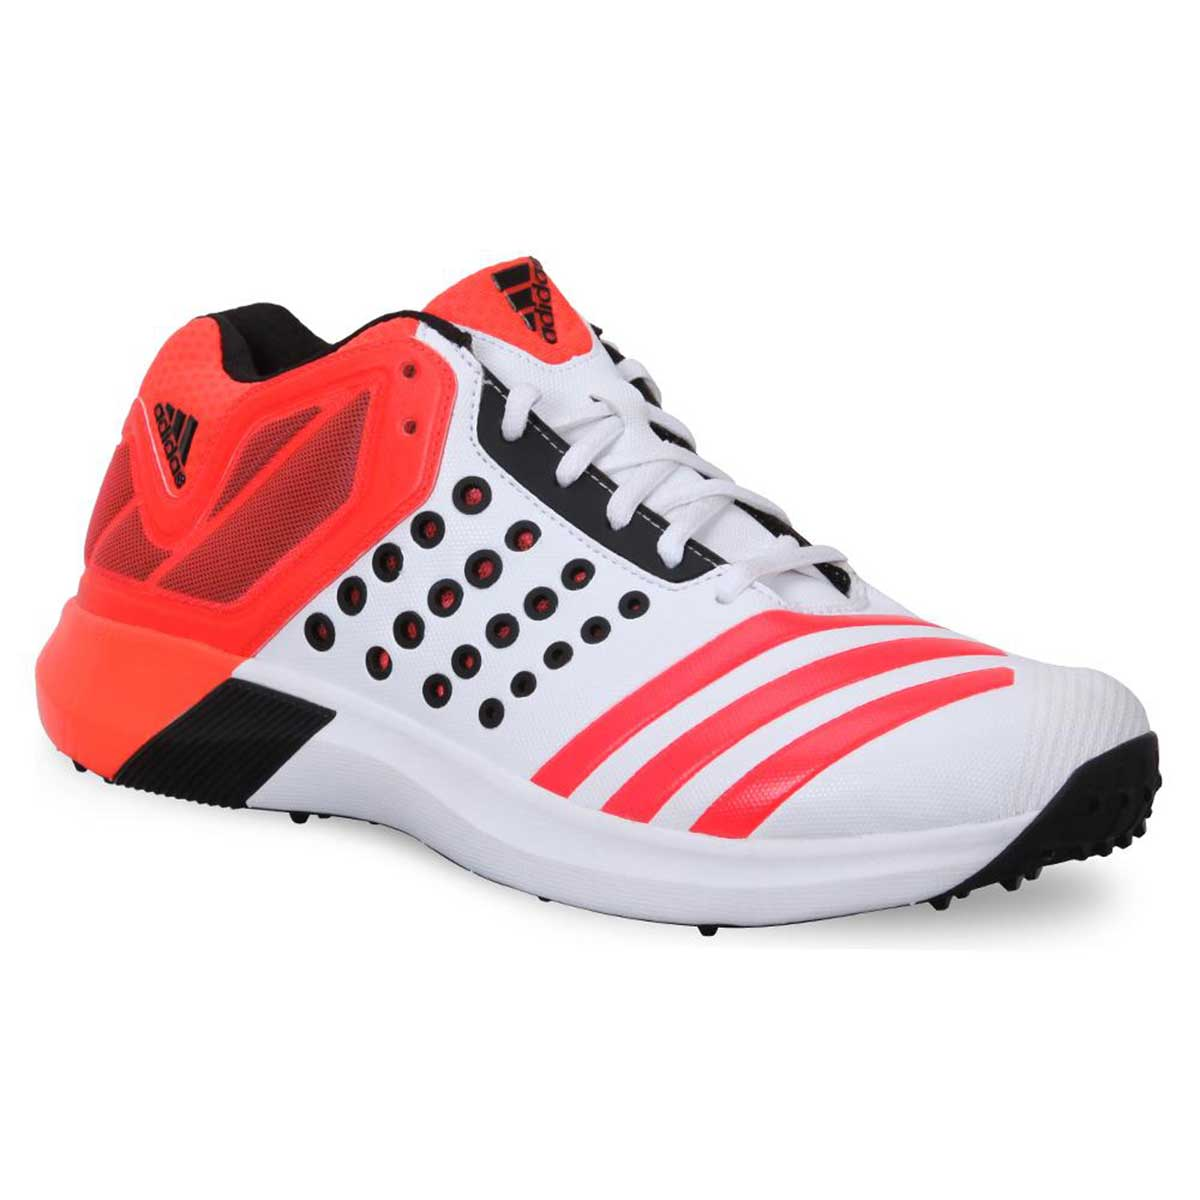 adidas cricket shoes online shopping